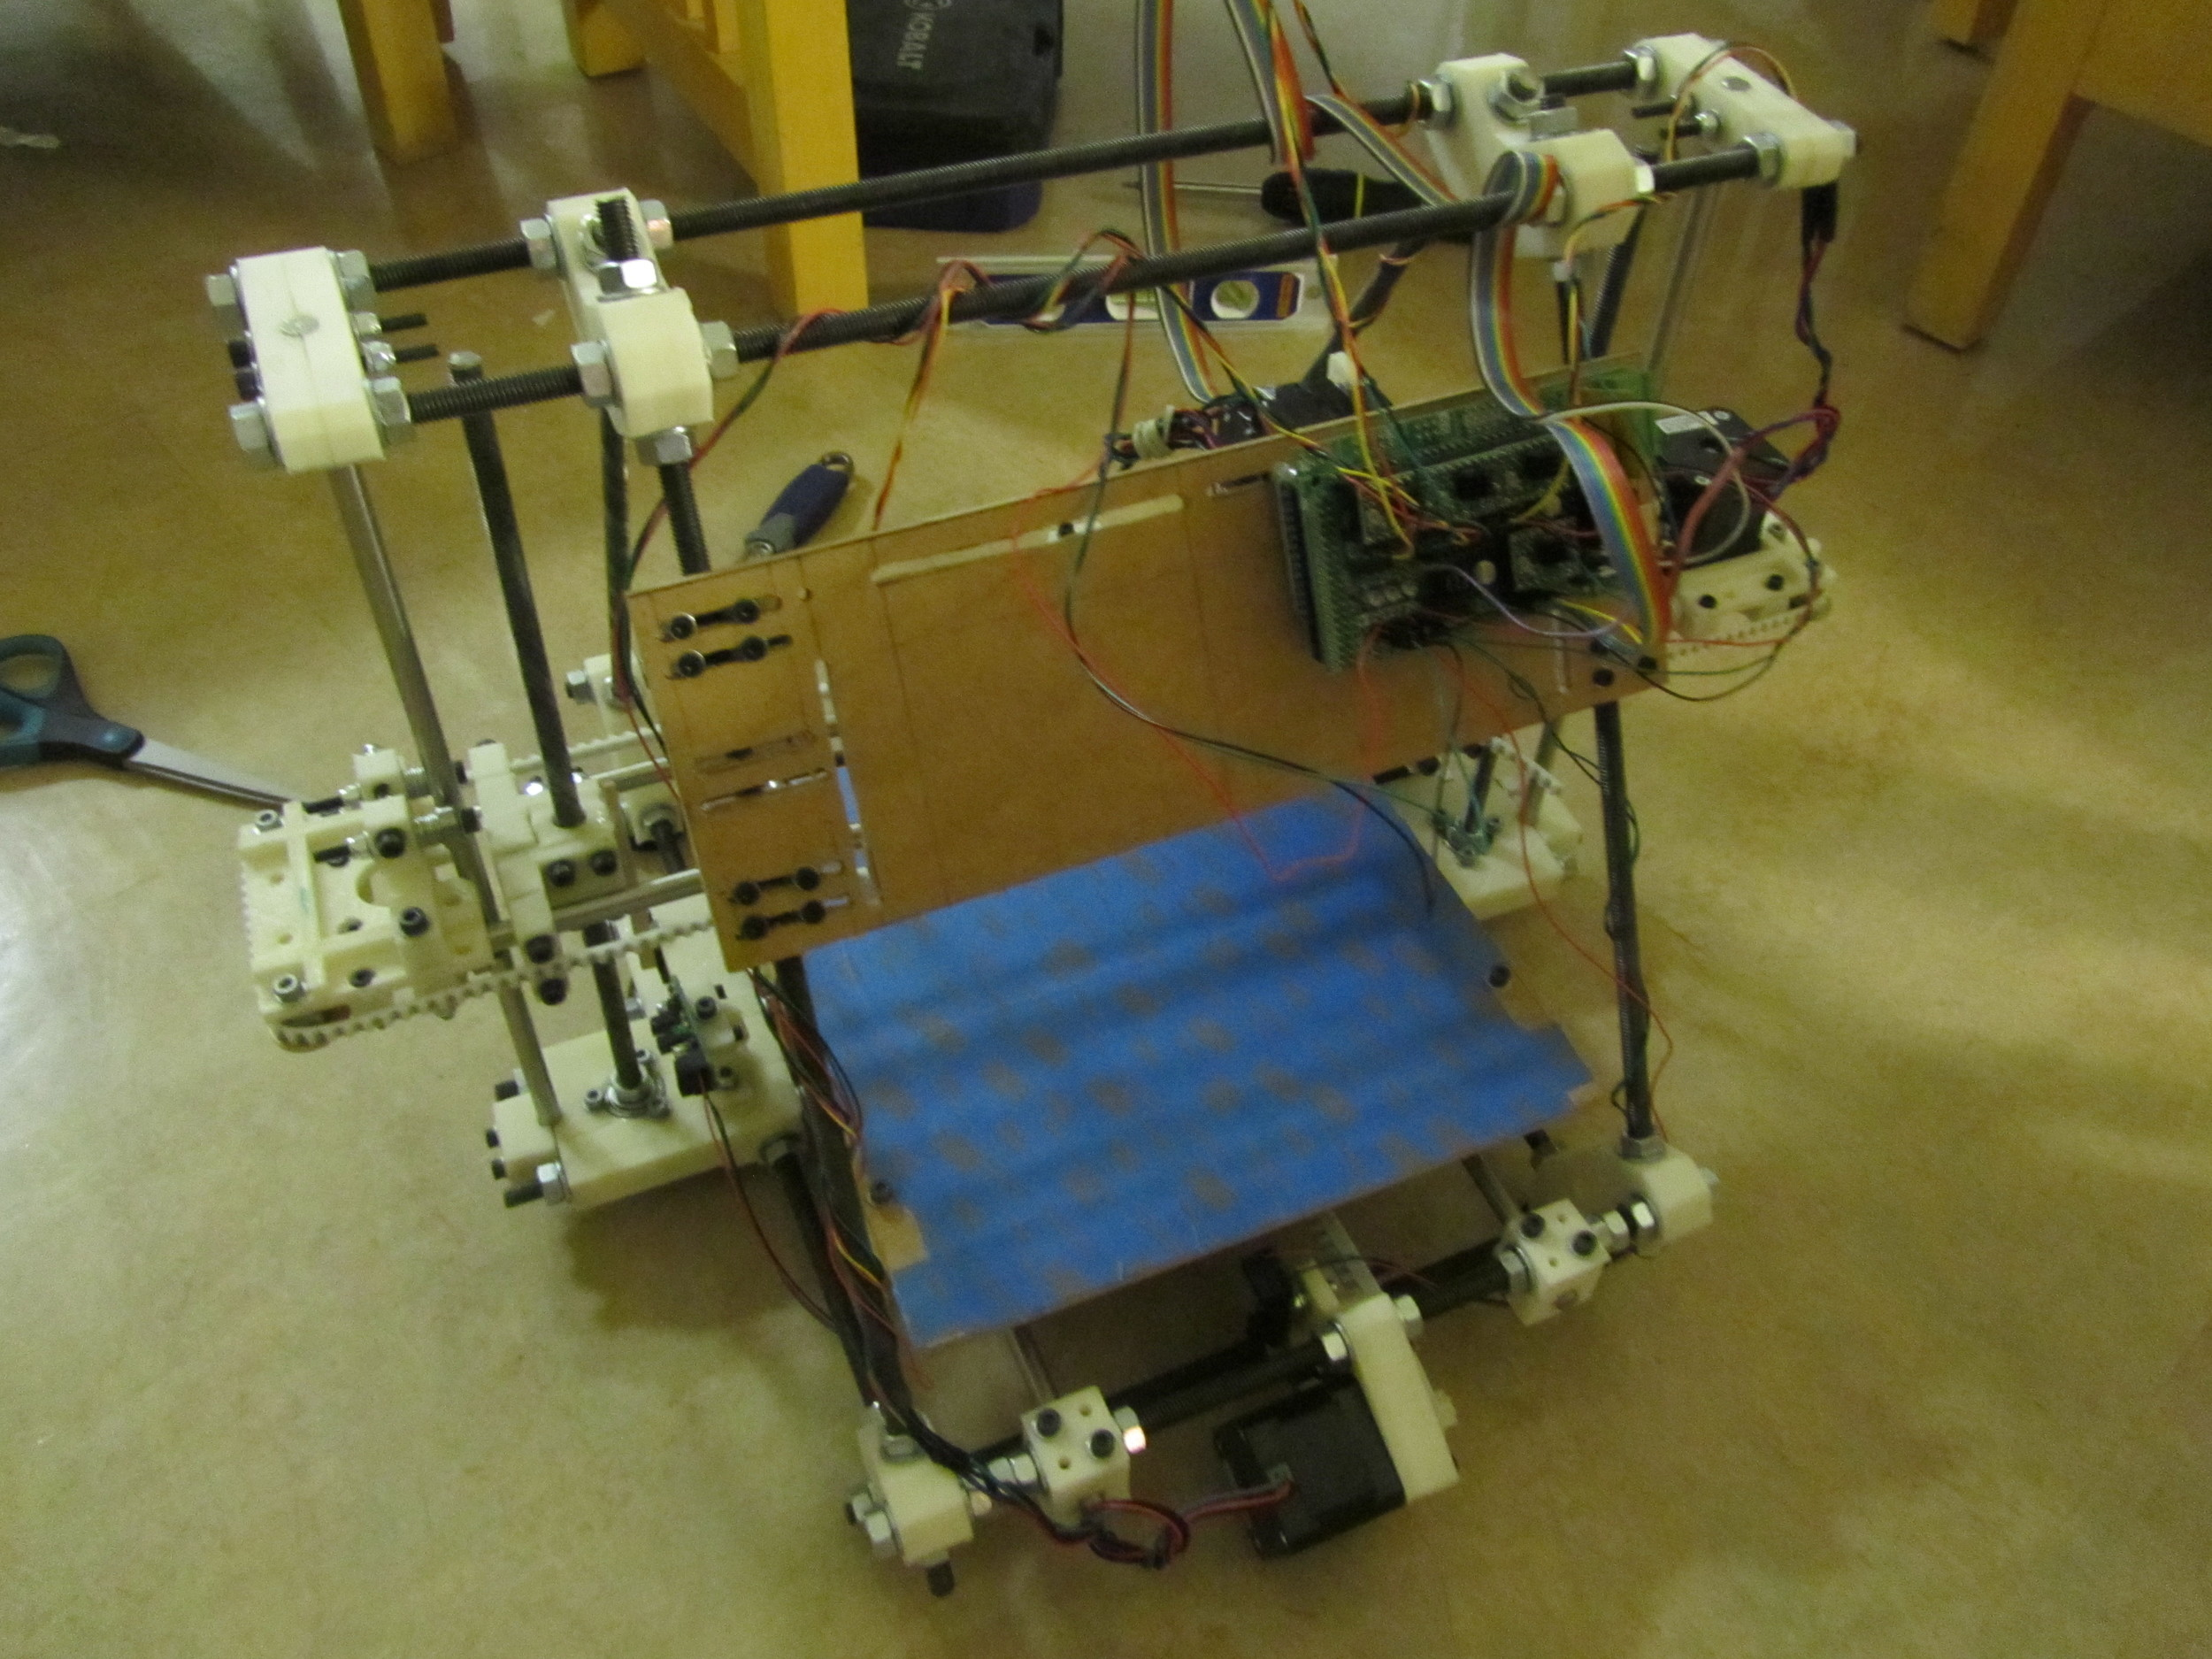 The finished printer